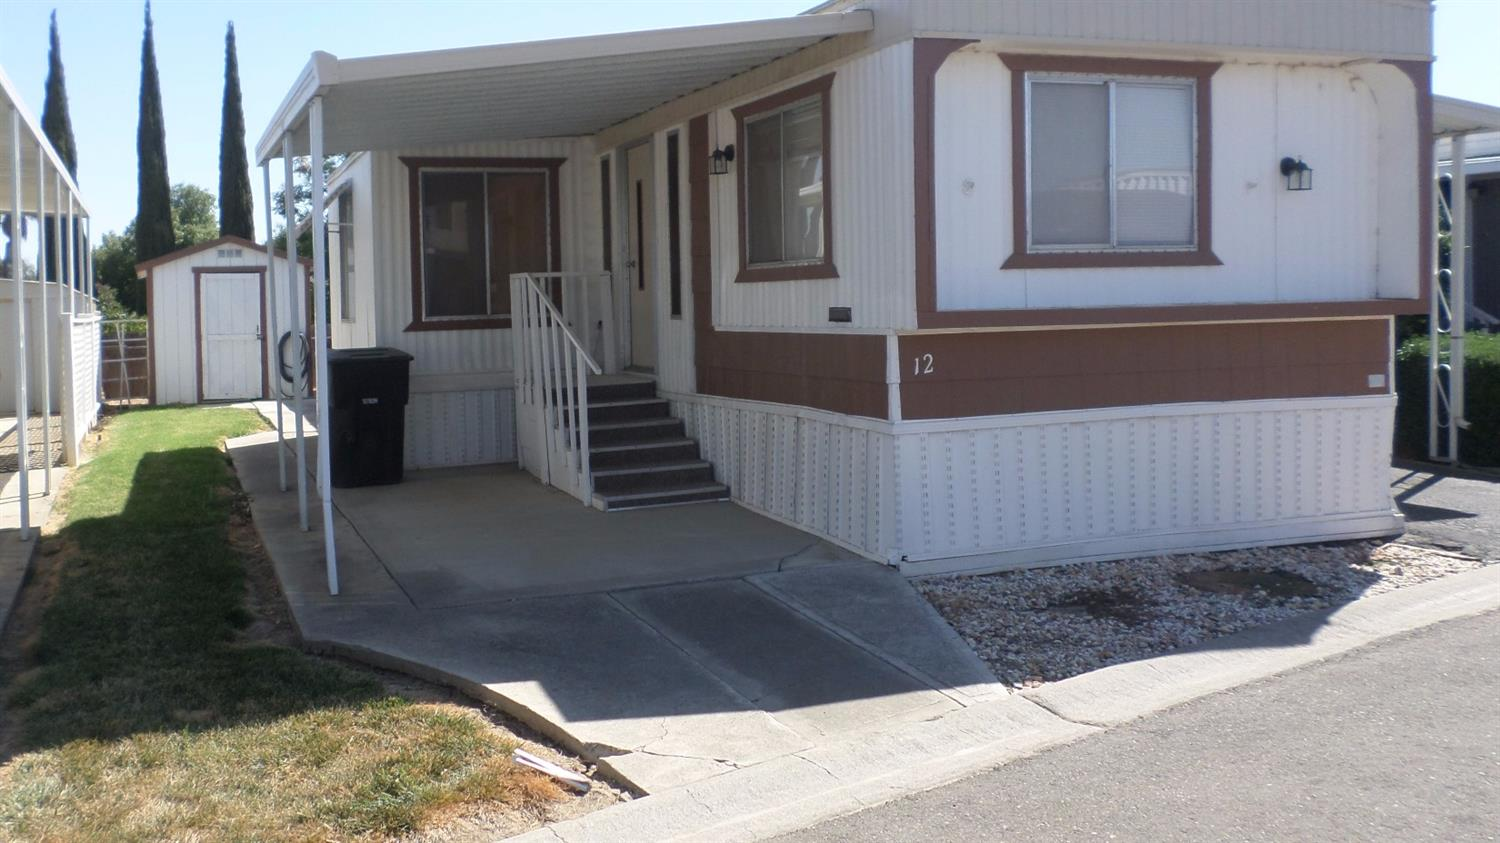 $12,000 - 2Br/2Ba -  for Sale in Gustine